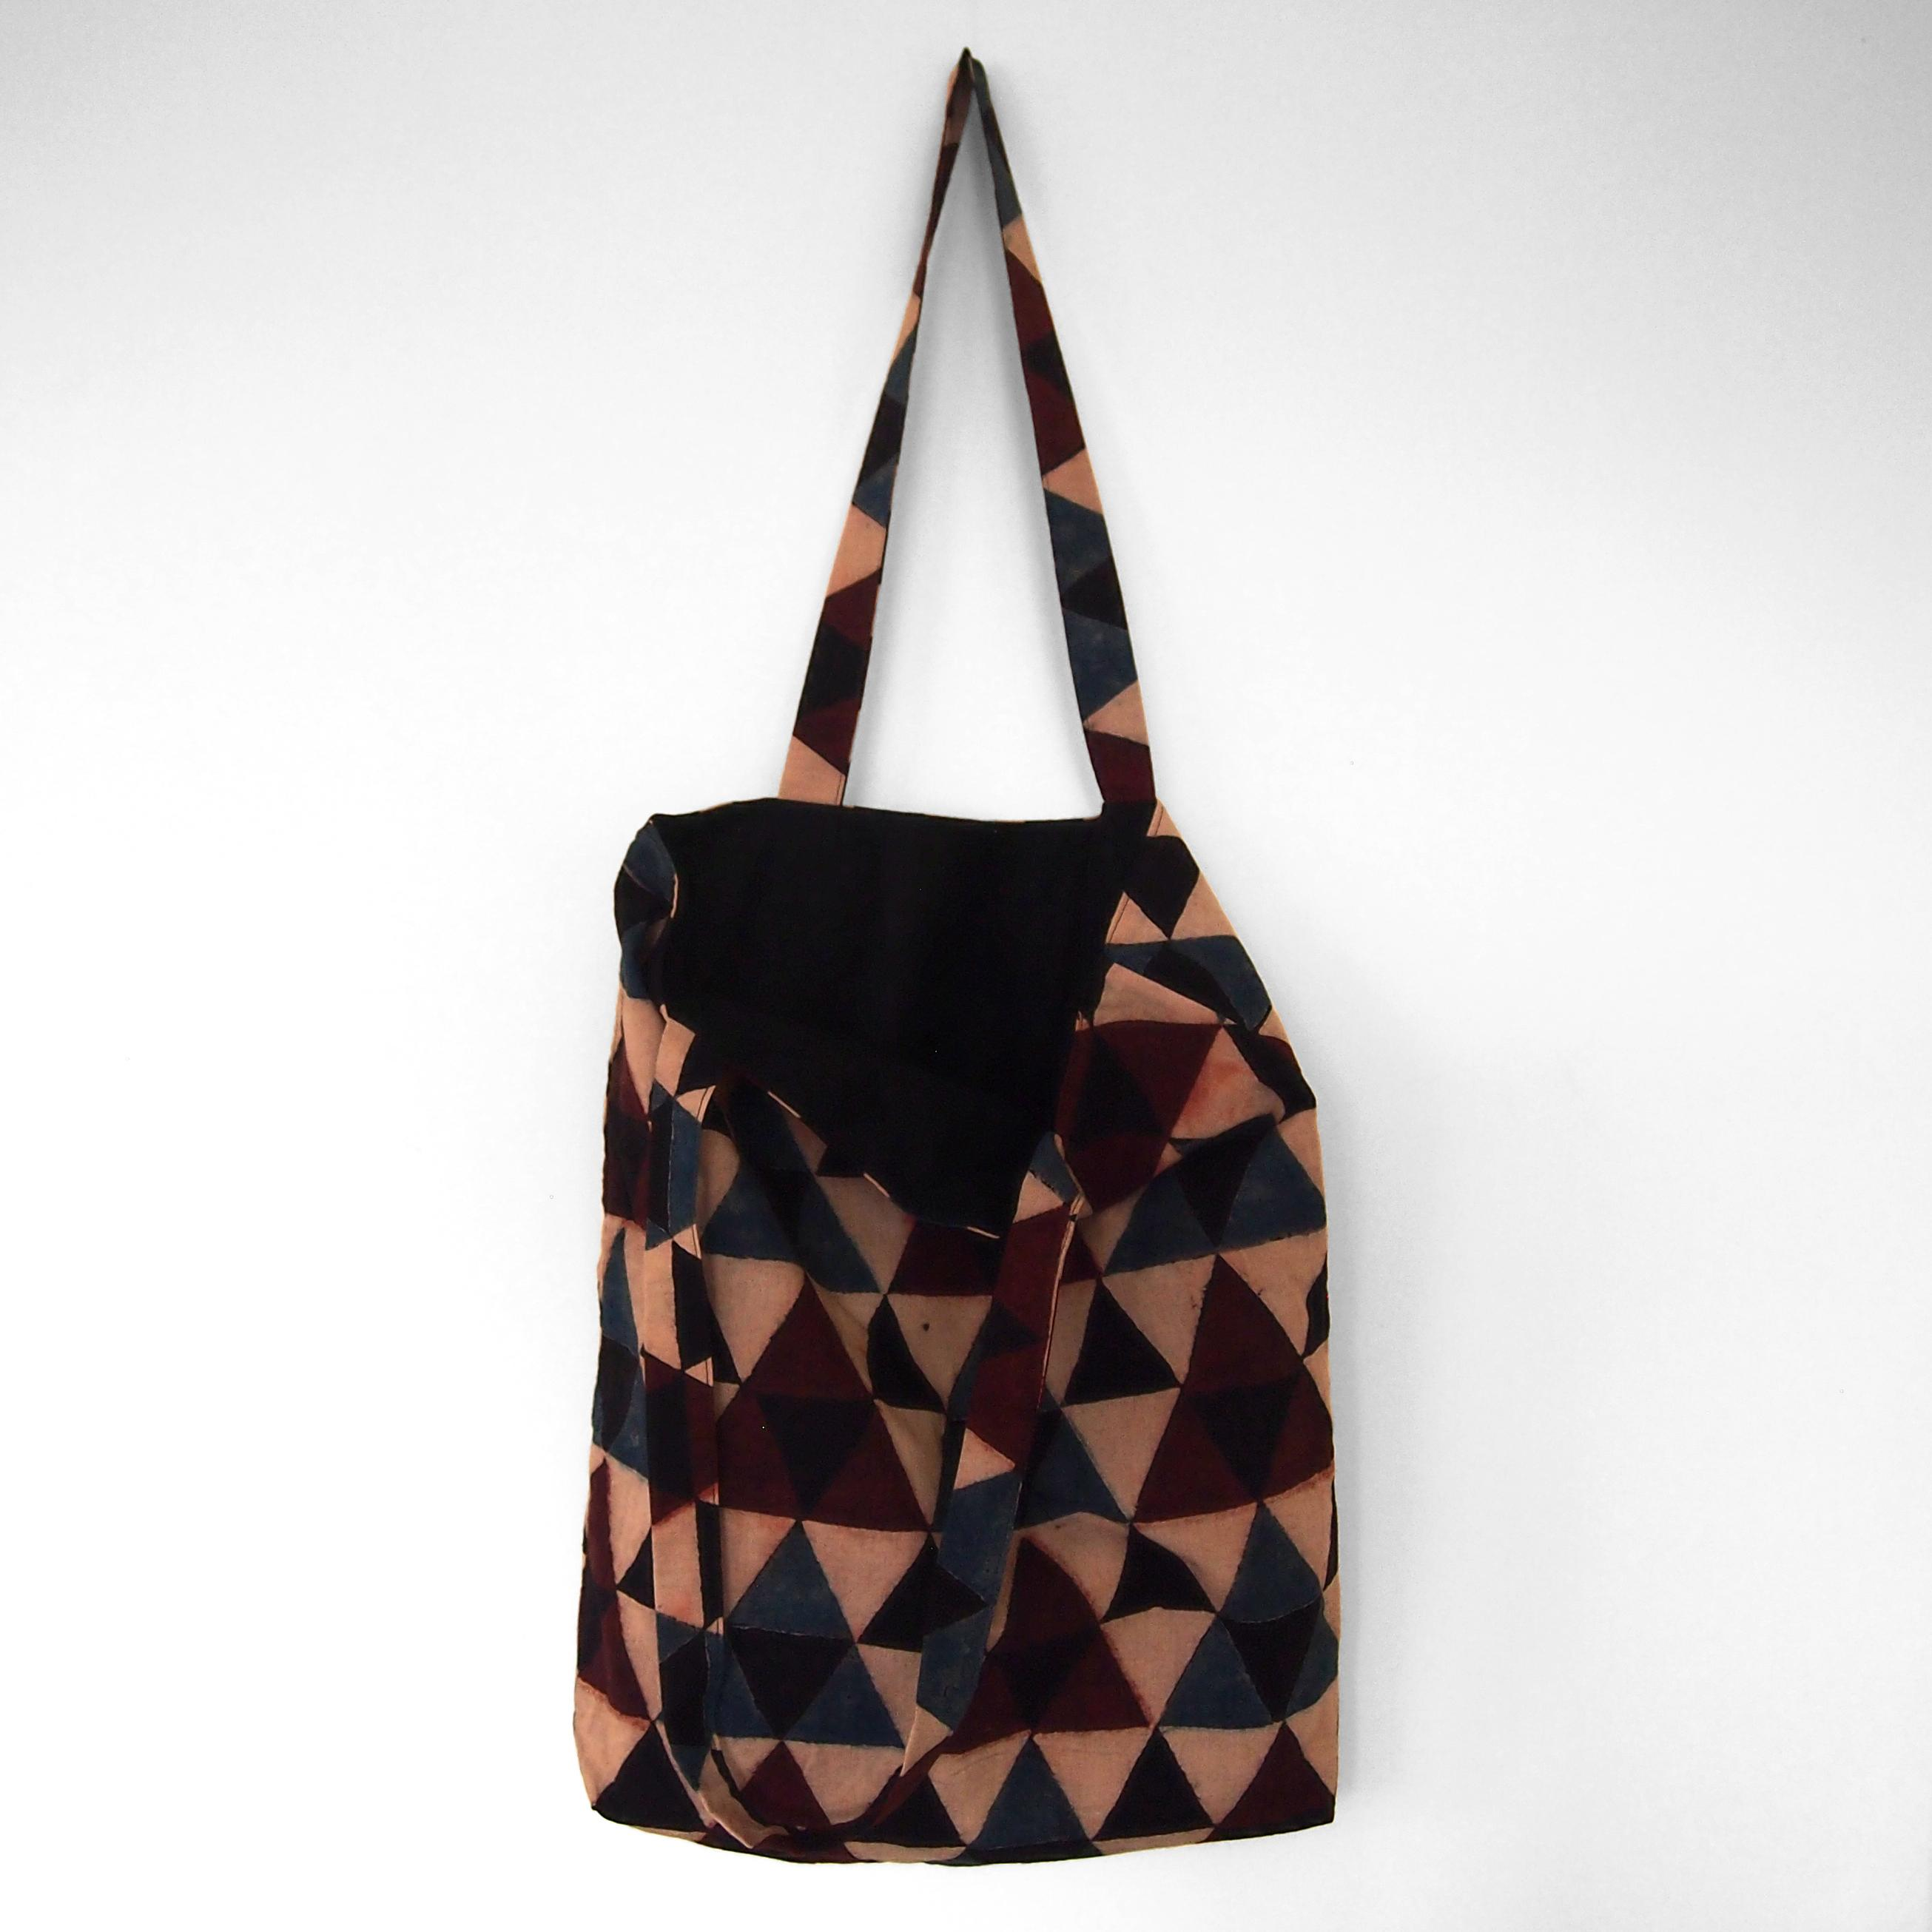 block printed tote bag, cream, black blue red triangle design, lined with black cotton, open